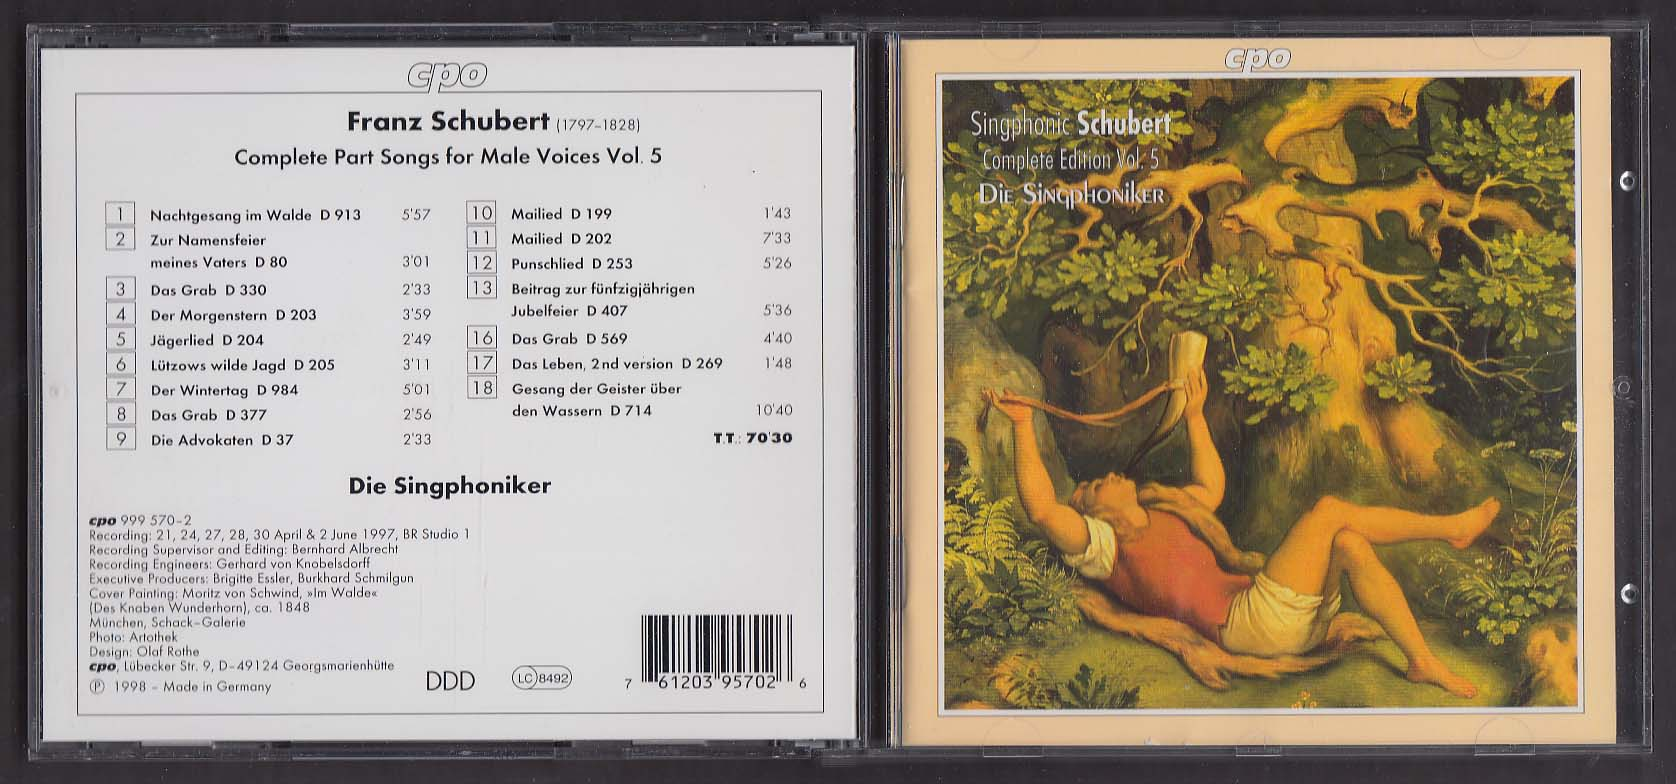 Image for Singphonic Schubert Complete Edition V 5 Die Singphoniker CPO 999 570-2 CD 1998